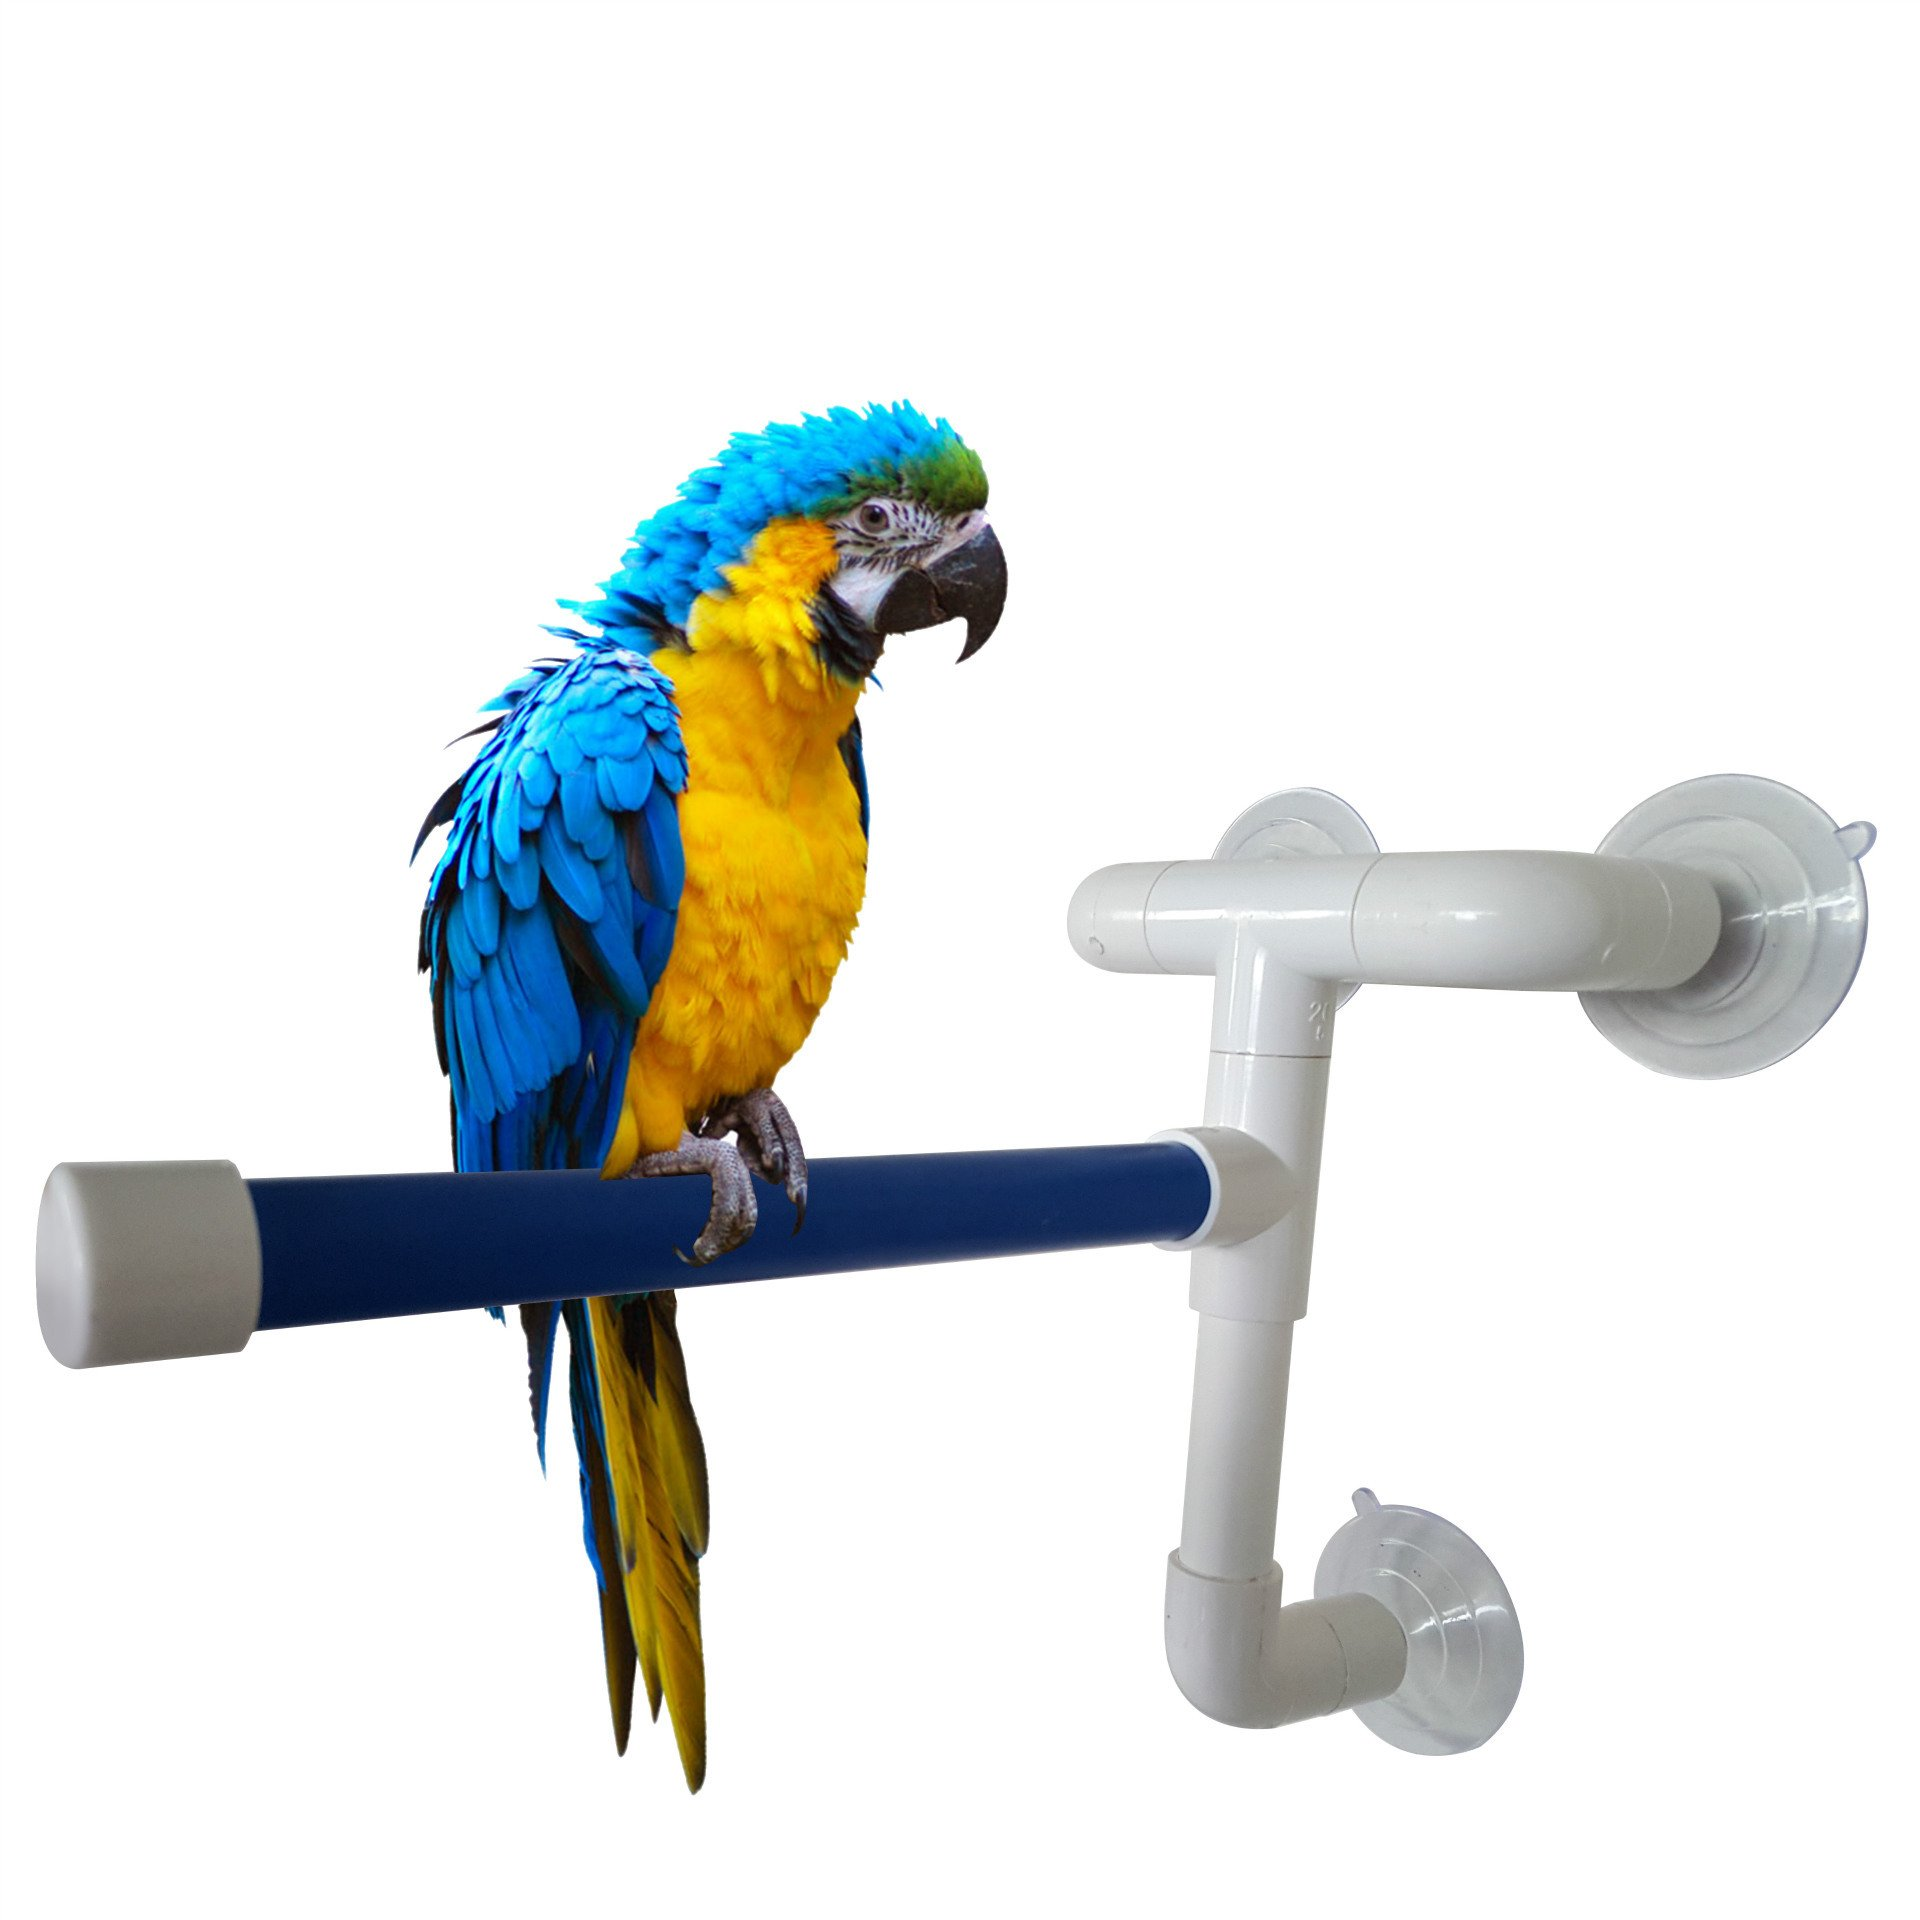 UTOPIAY Upgrade Bath Perches for Bird Parrot Standing Platform Rack Suction Cup Window Shower Bird Bath Toys Frame by UTOPIAY